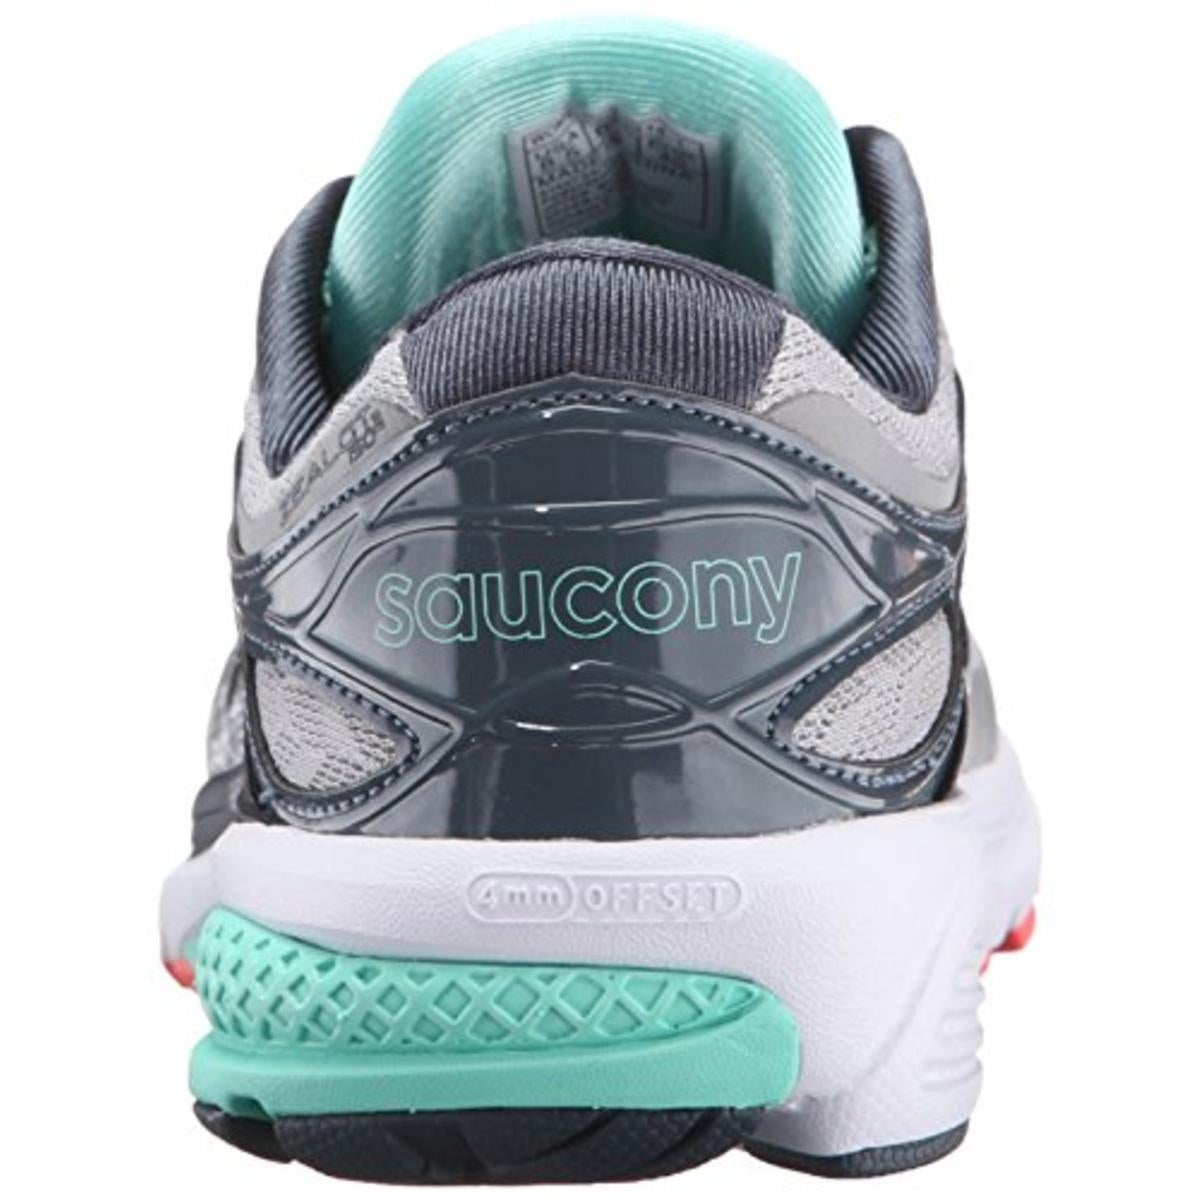 sextant completely valley  Shop Saucony Womens Zealot ISO 2 Running Shoes Everun ISOfit - Overstock -  22026856